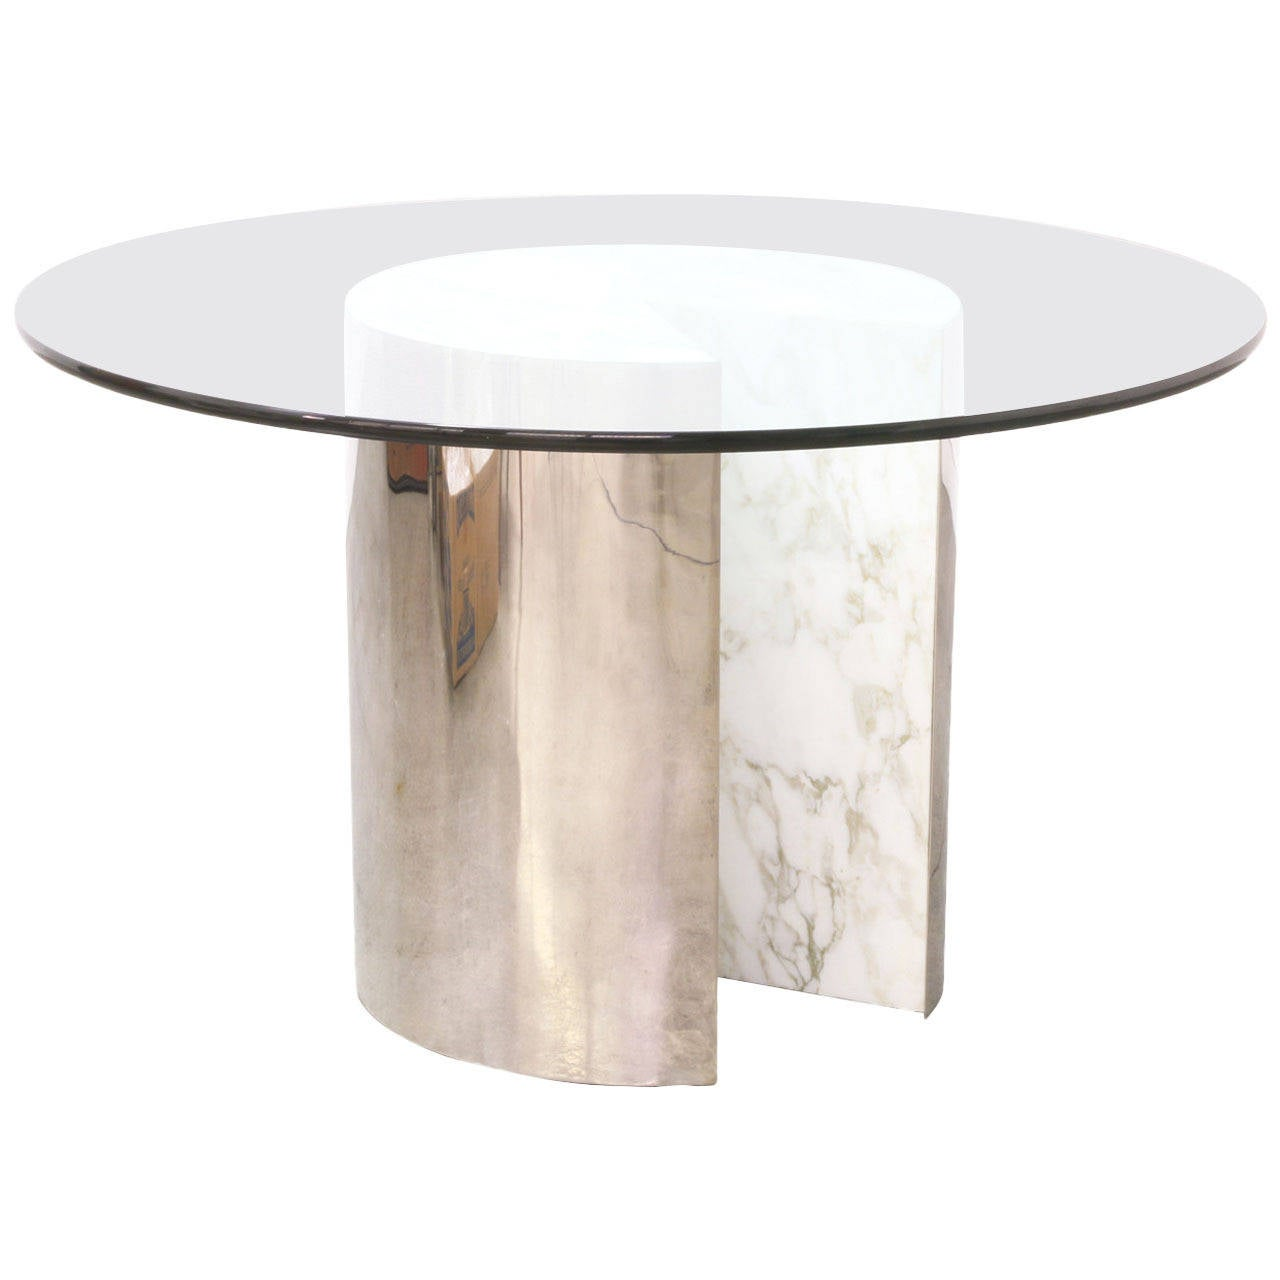 Vintage stainless steel and carrera marble dining table with glass top at 1stdibs - Marble dining table prices ...